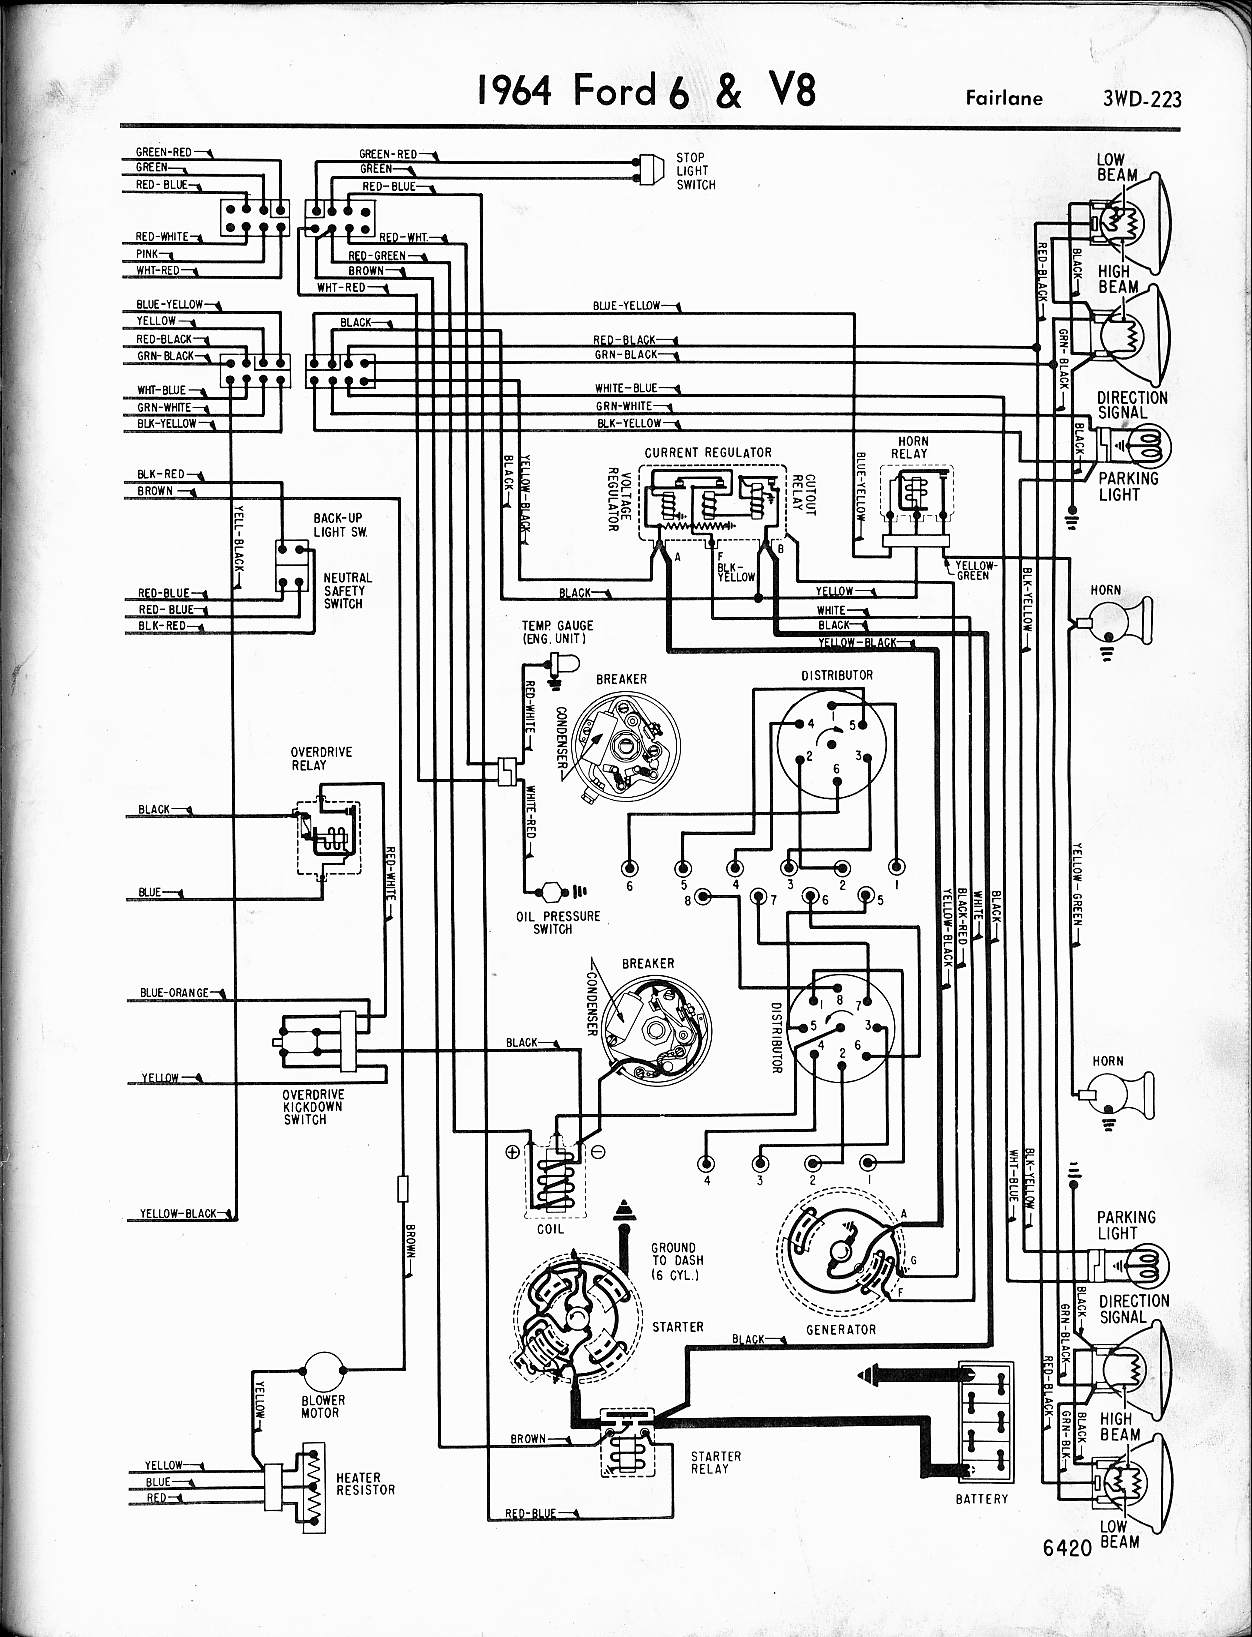 MWire5765 223 1964 1966 thunderbirfd wiring schematic 66 mustang wiring diagram 1966 ford truck wiring diagram at n-0.co